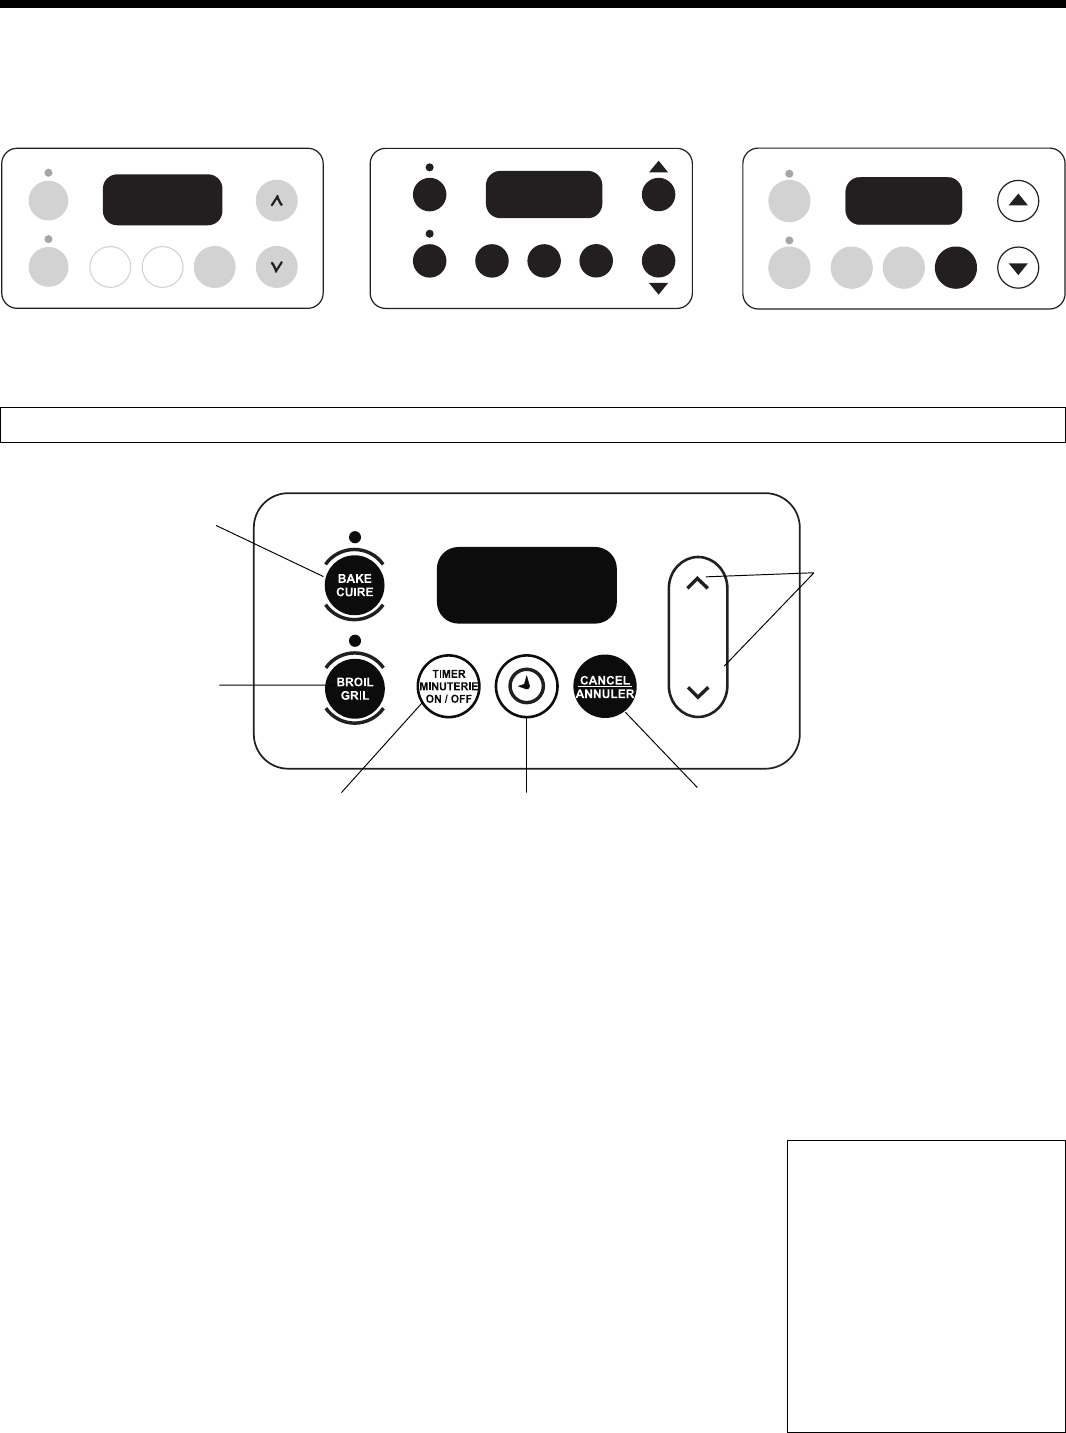 frigidaire electronic oven control guide